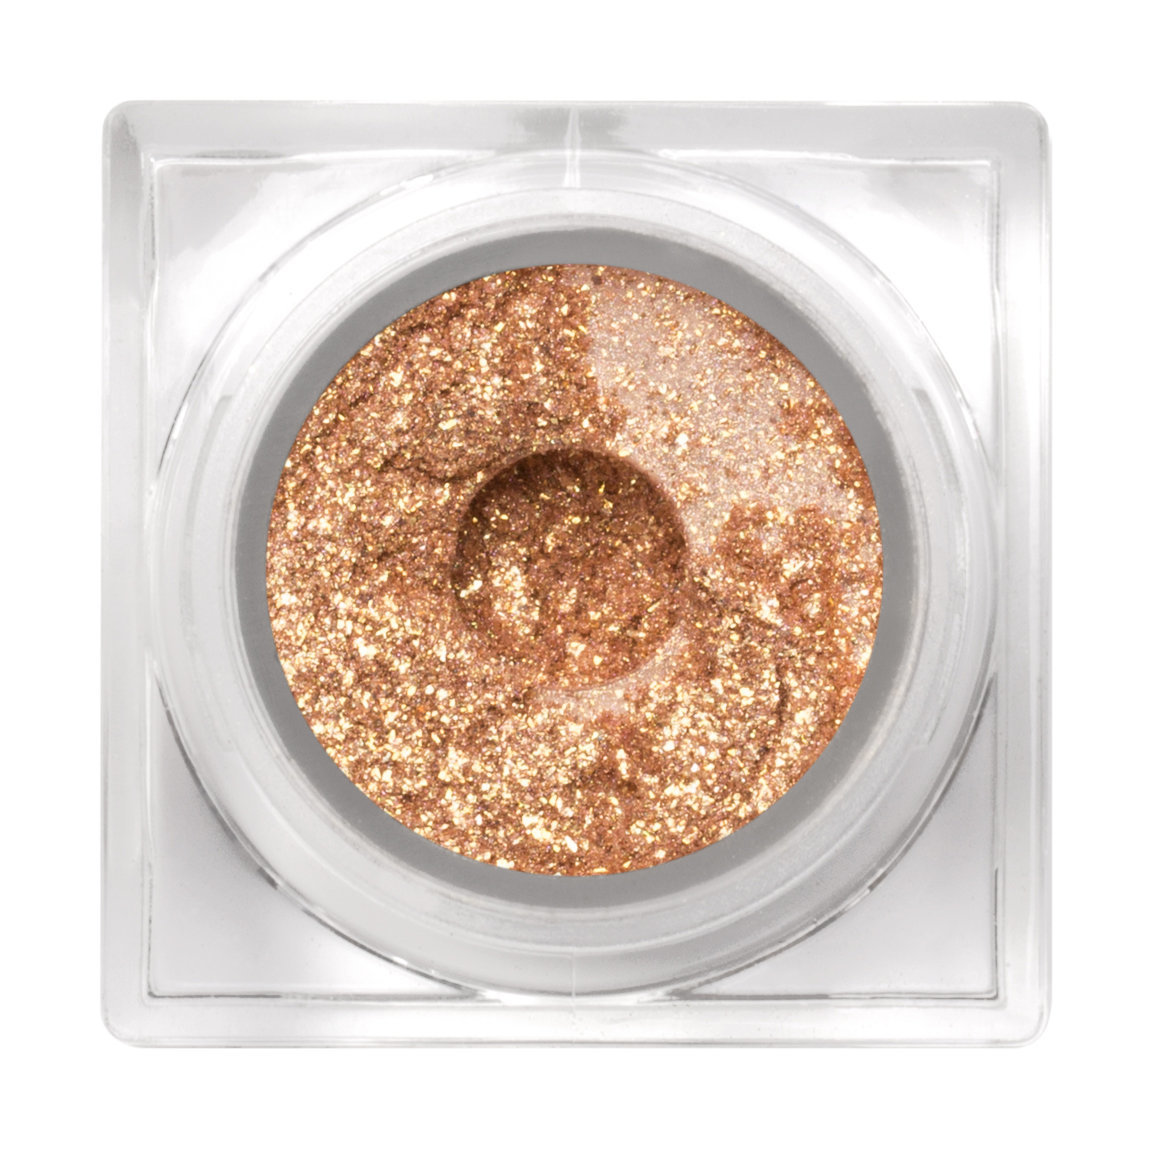 Lit Cosmetics Lit Metals Nudity (Gold) alternative view 1 - product swatch.